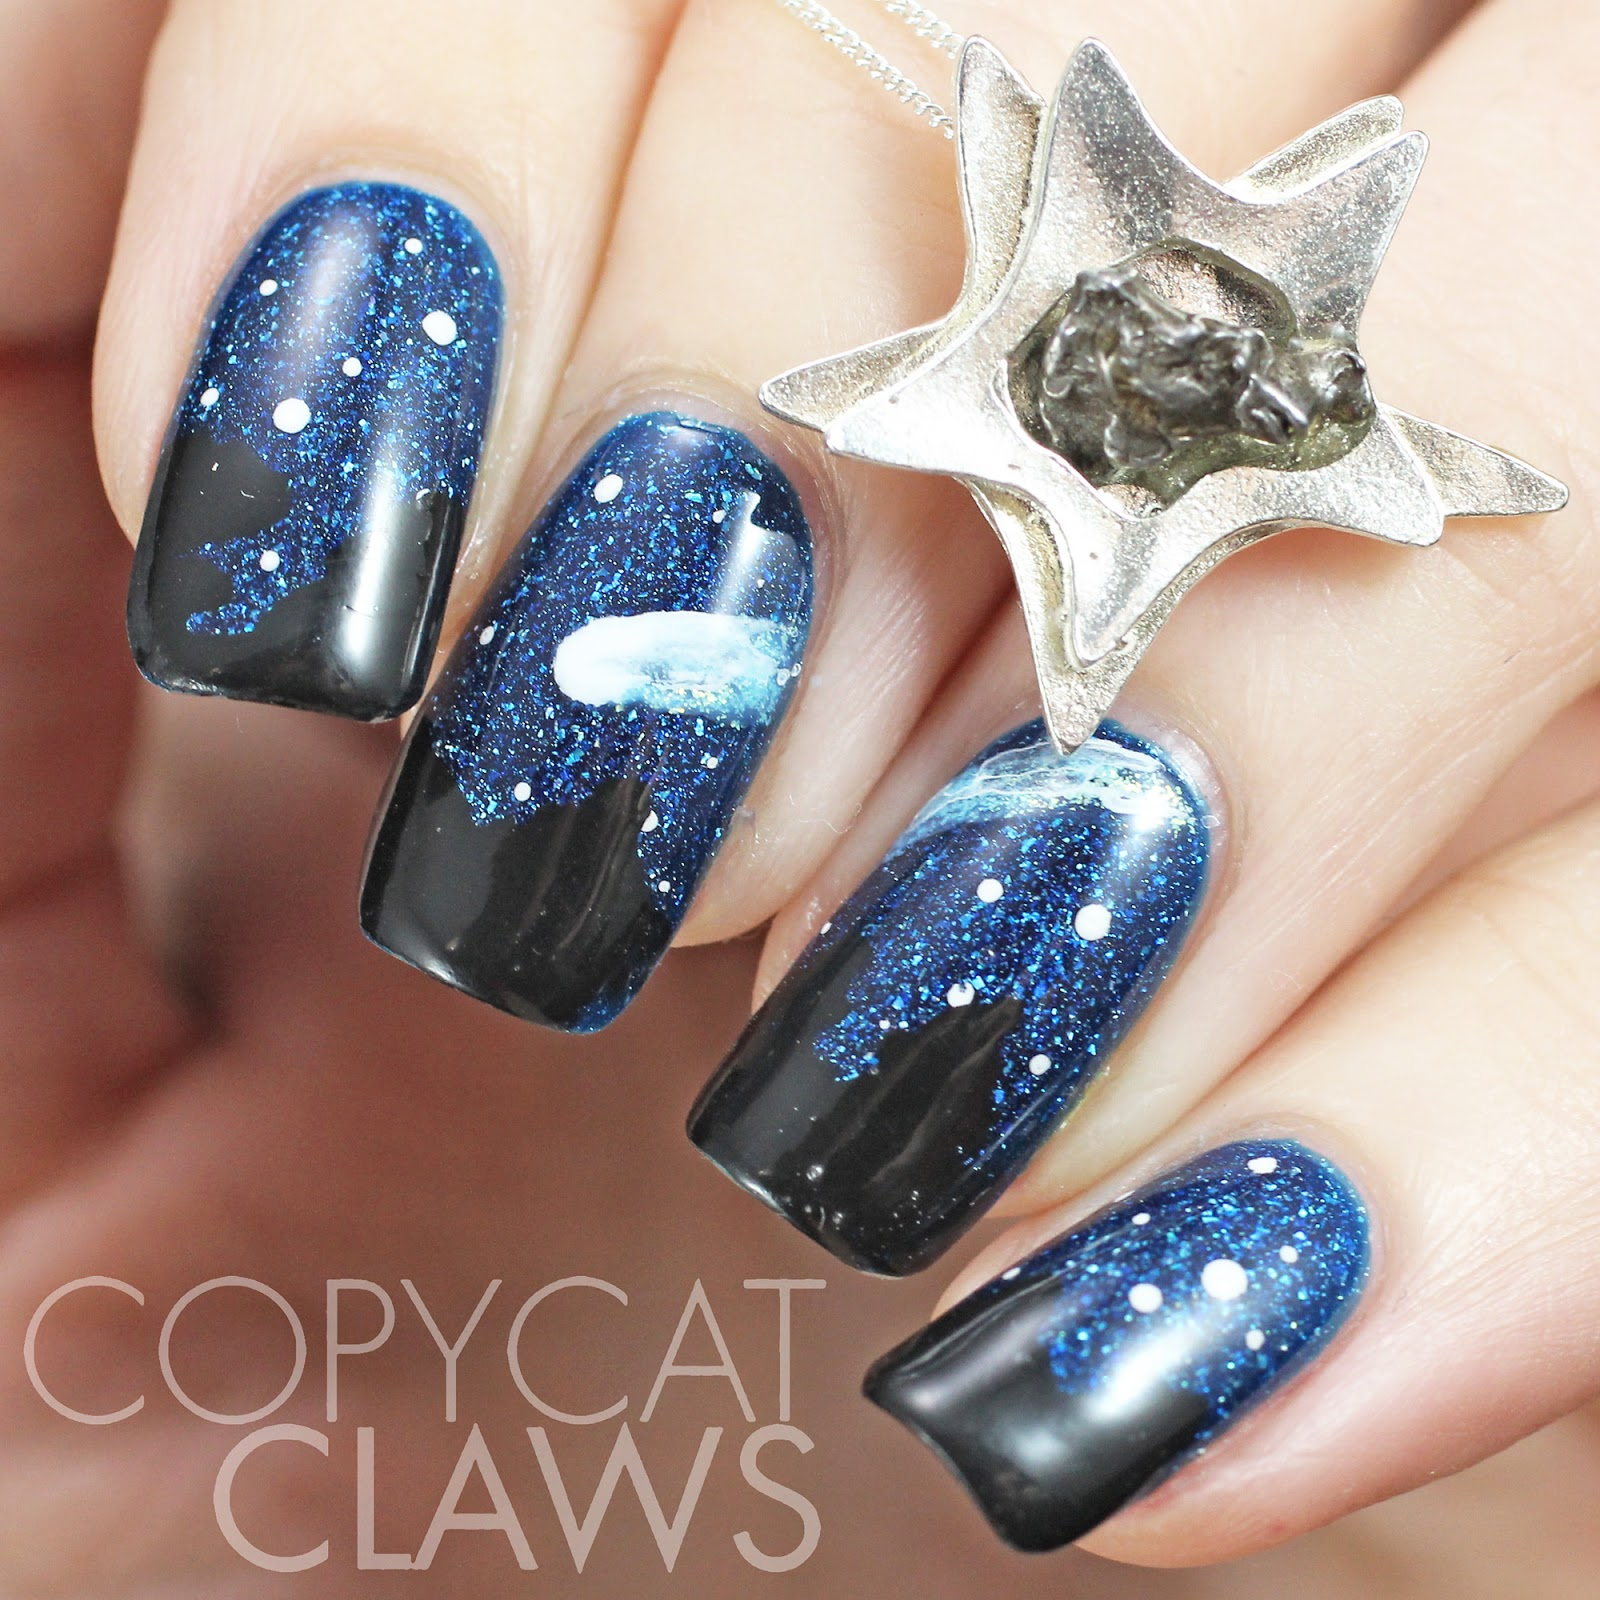 Copycat Claws: Necklace-Inpsired Meteorite Nail Art